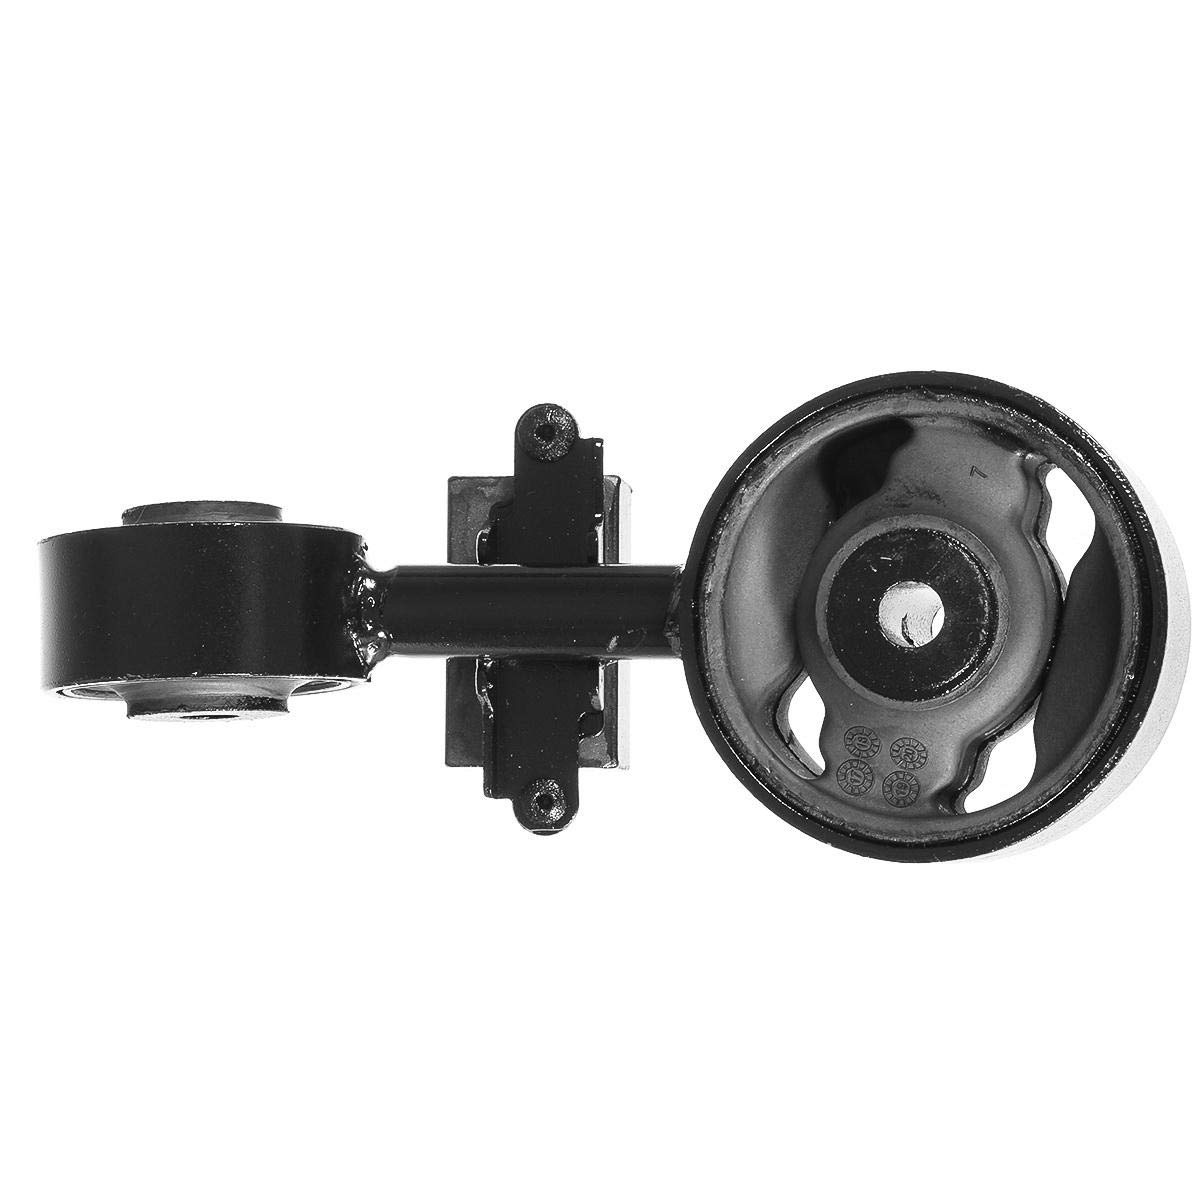 MAXMOUNT A4274 Front Torque Strut Mount Replacement For Toyota ...